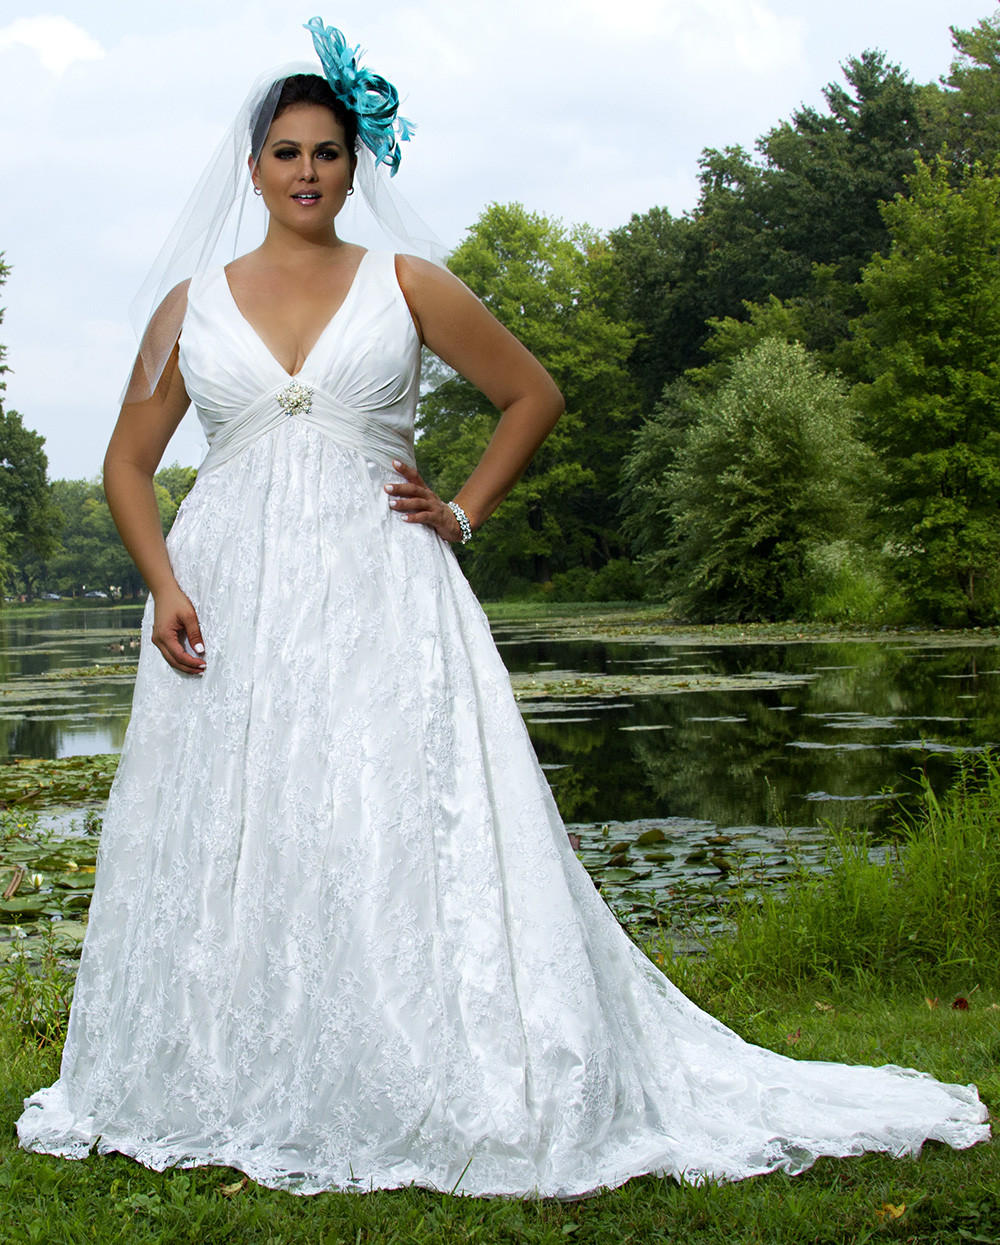 Athens wedding dress styles for different body shapes for Non traditional wedding dresses plus size